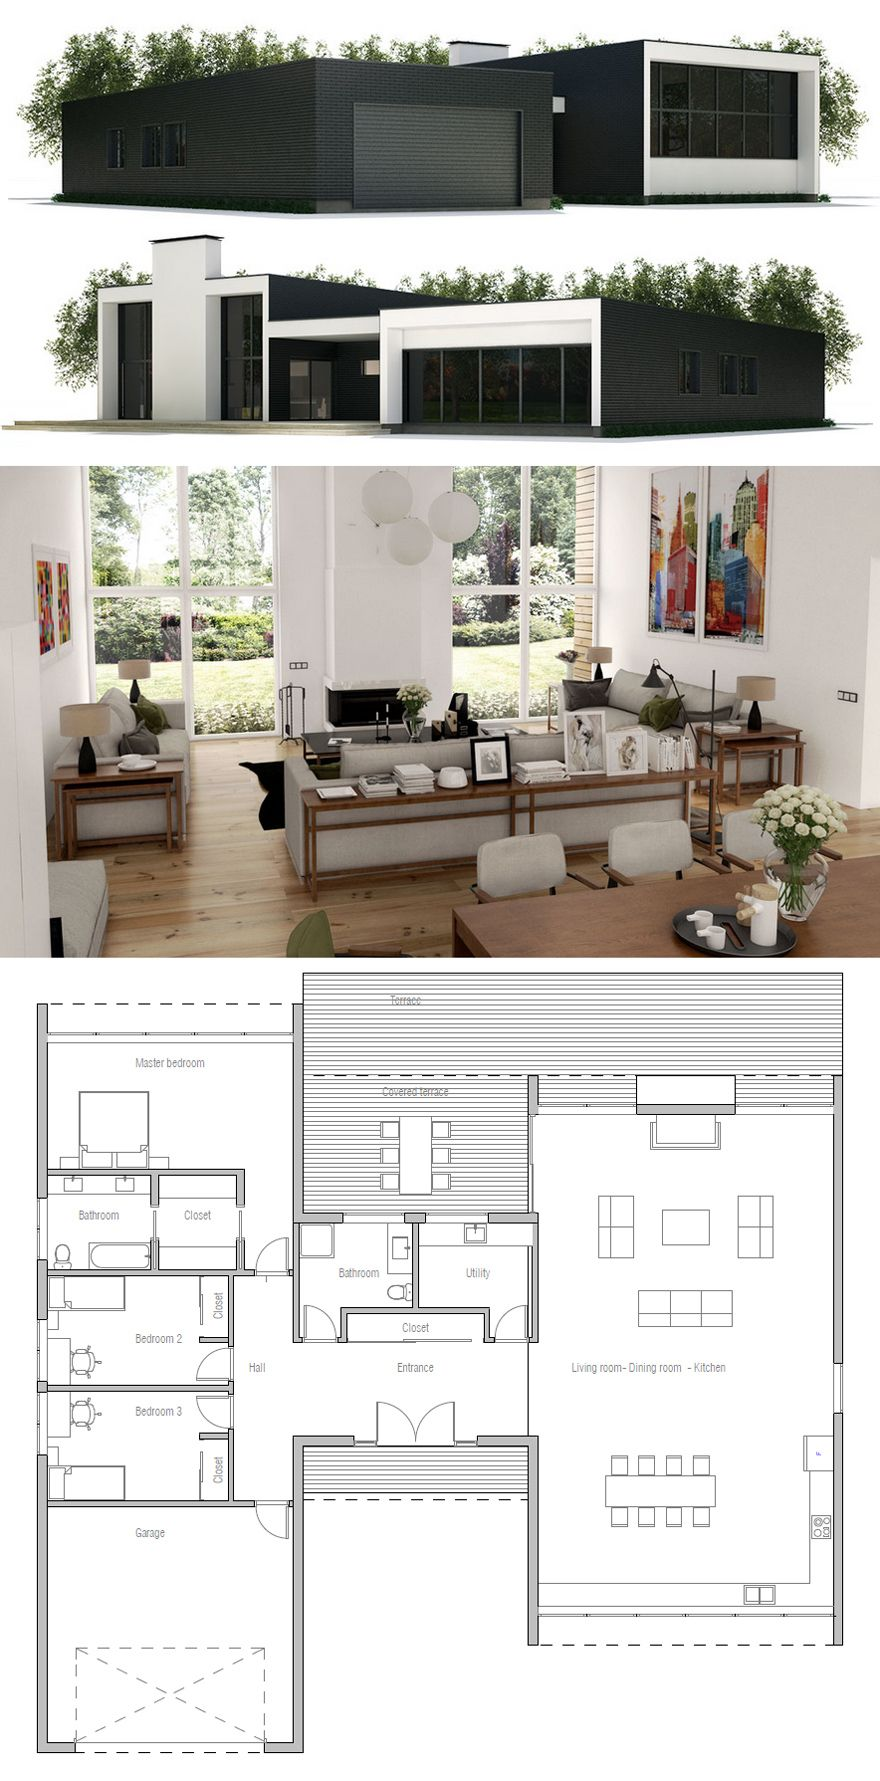 House Plan Ch370 Container House Plans Small House Plans Building A Container Home